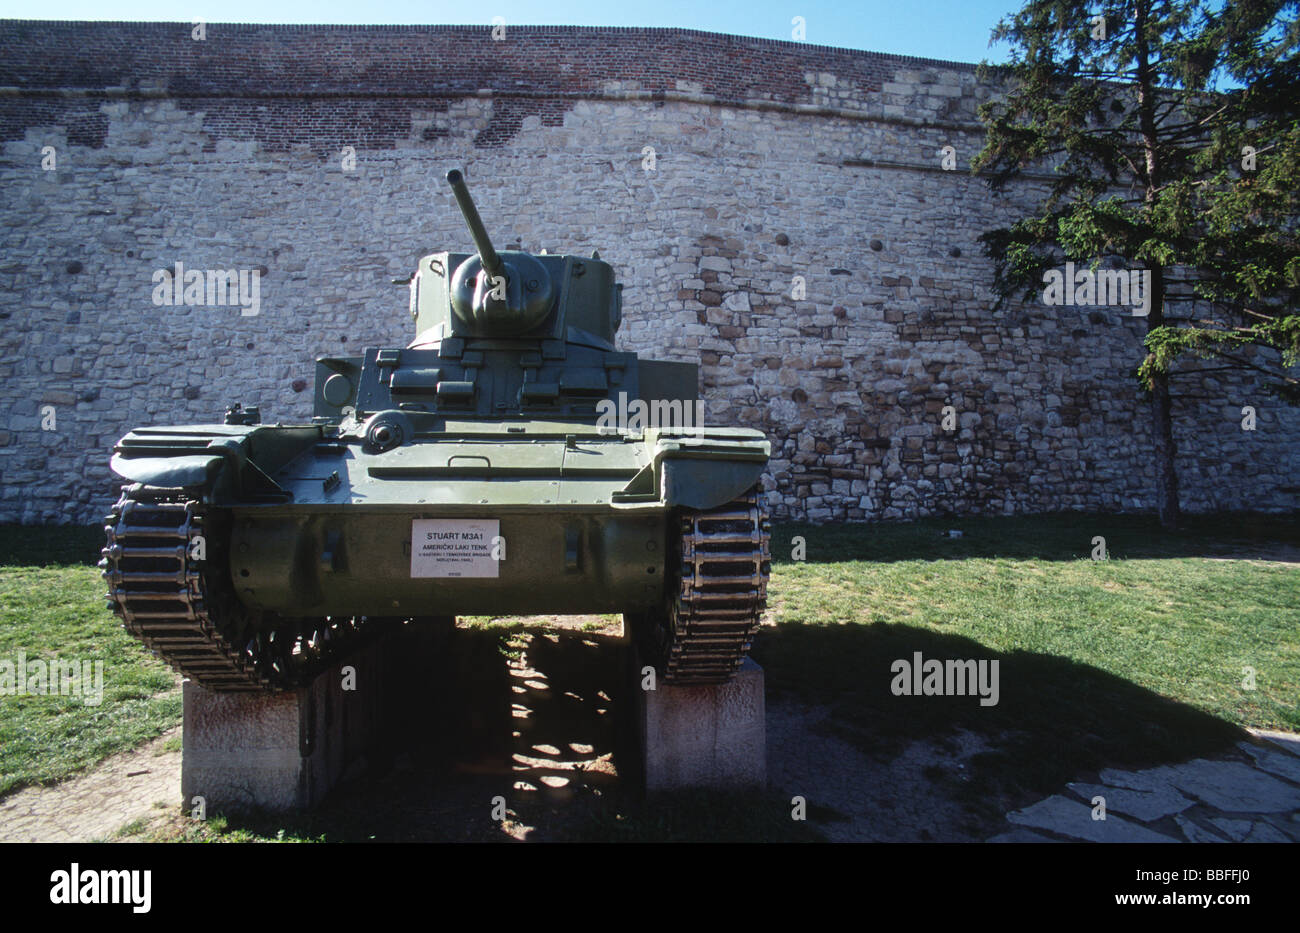 Second world war tank exposed in the military museum in the citadel walls of Kalemegdan park, Belgrade, Serbia - Stock Image